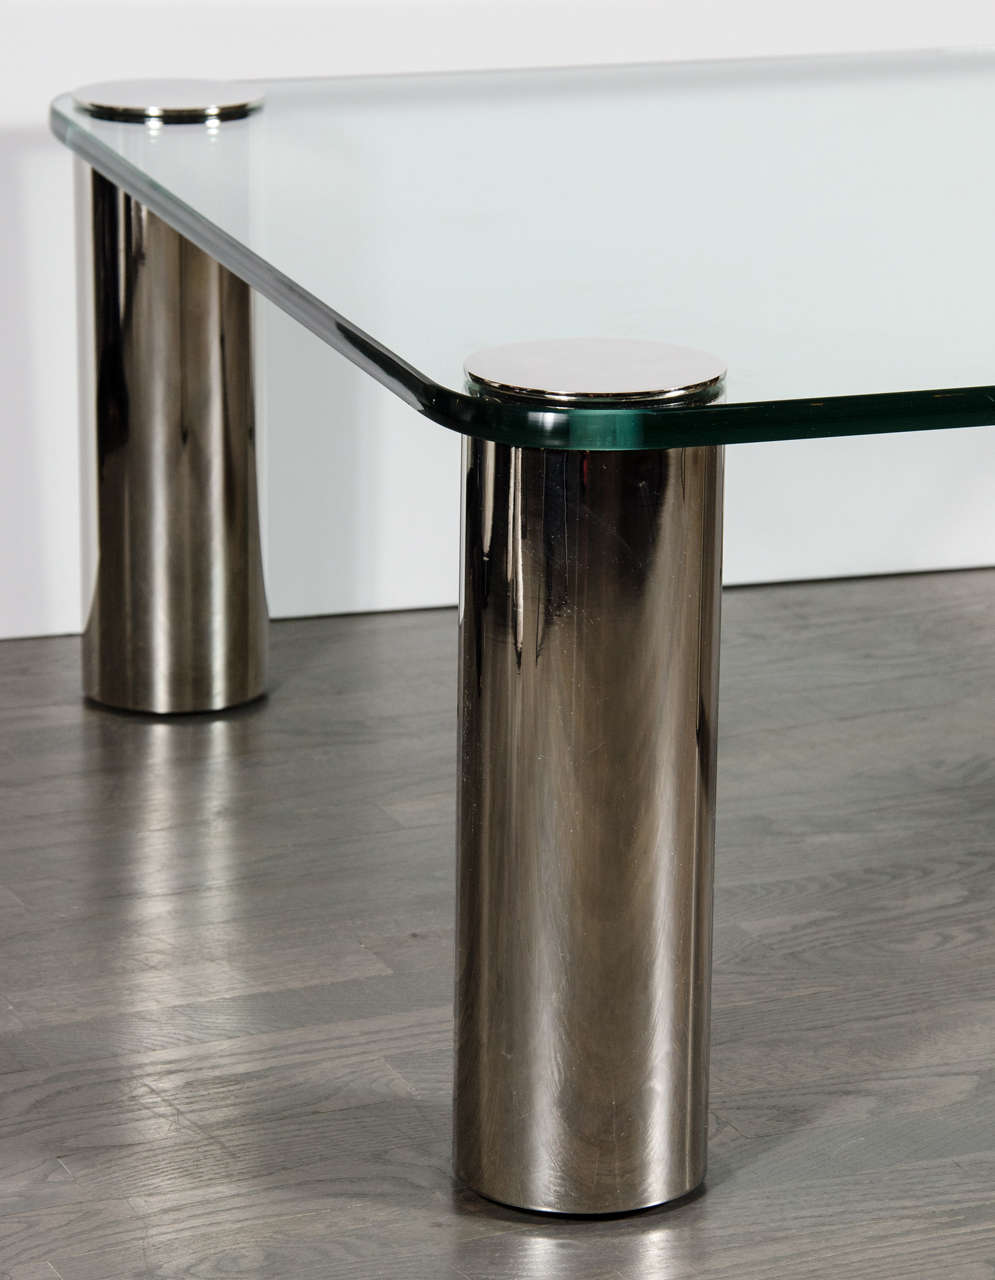 Furniture Legs Brushed Nickel mid-century modernist cocktail table with cylindrical brushed